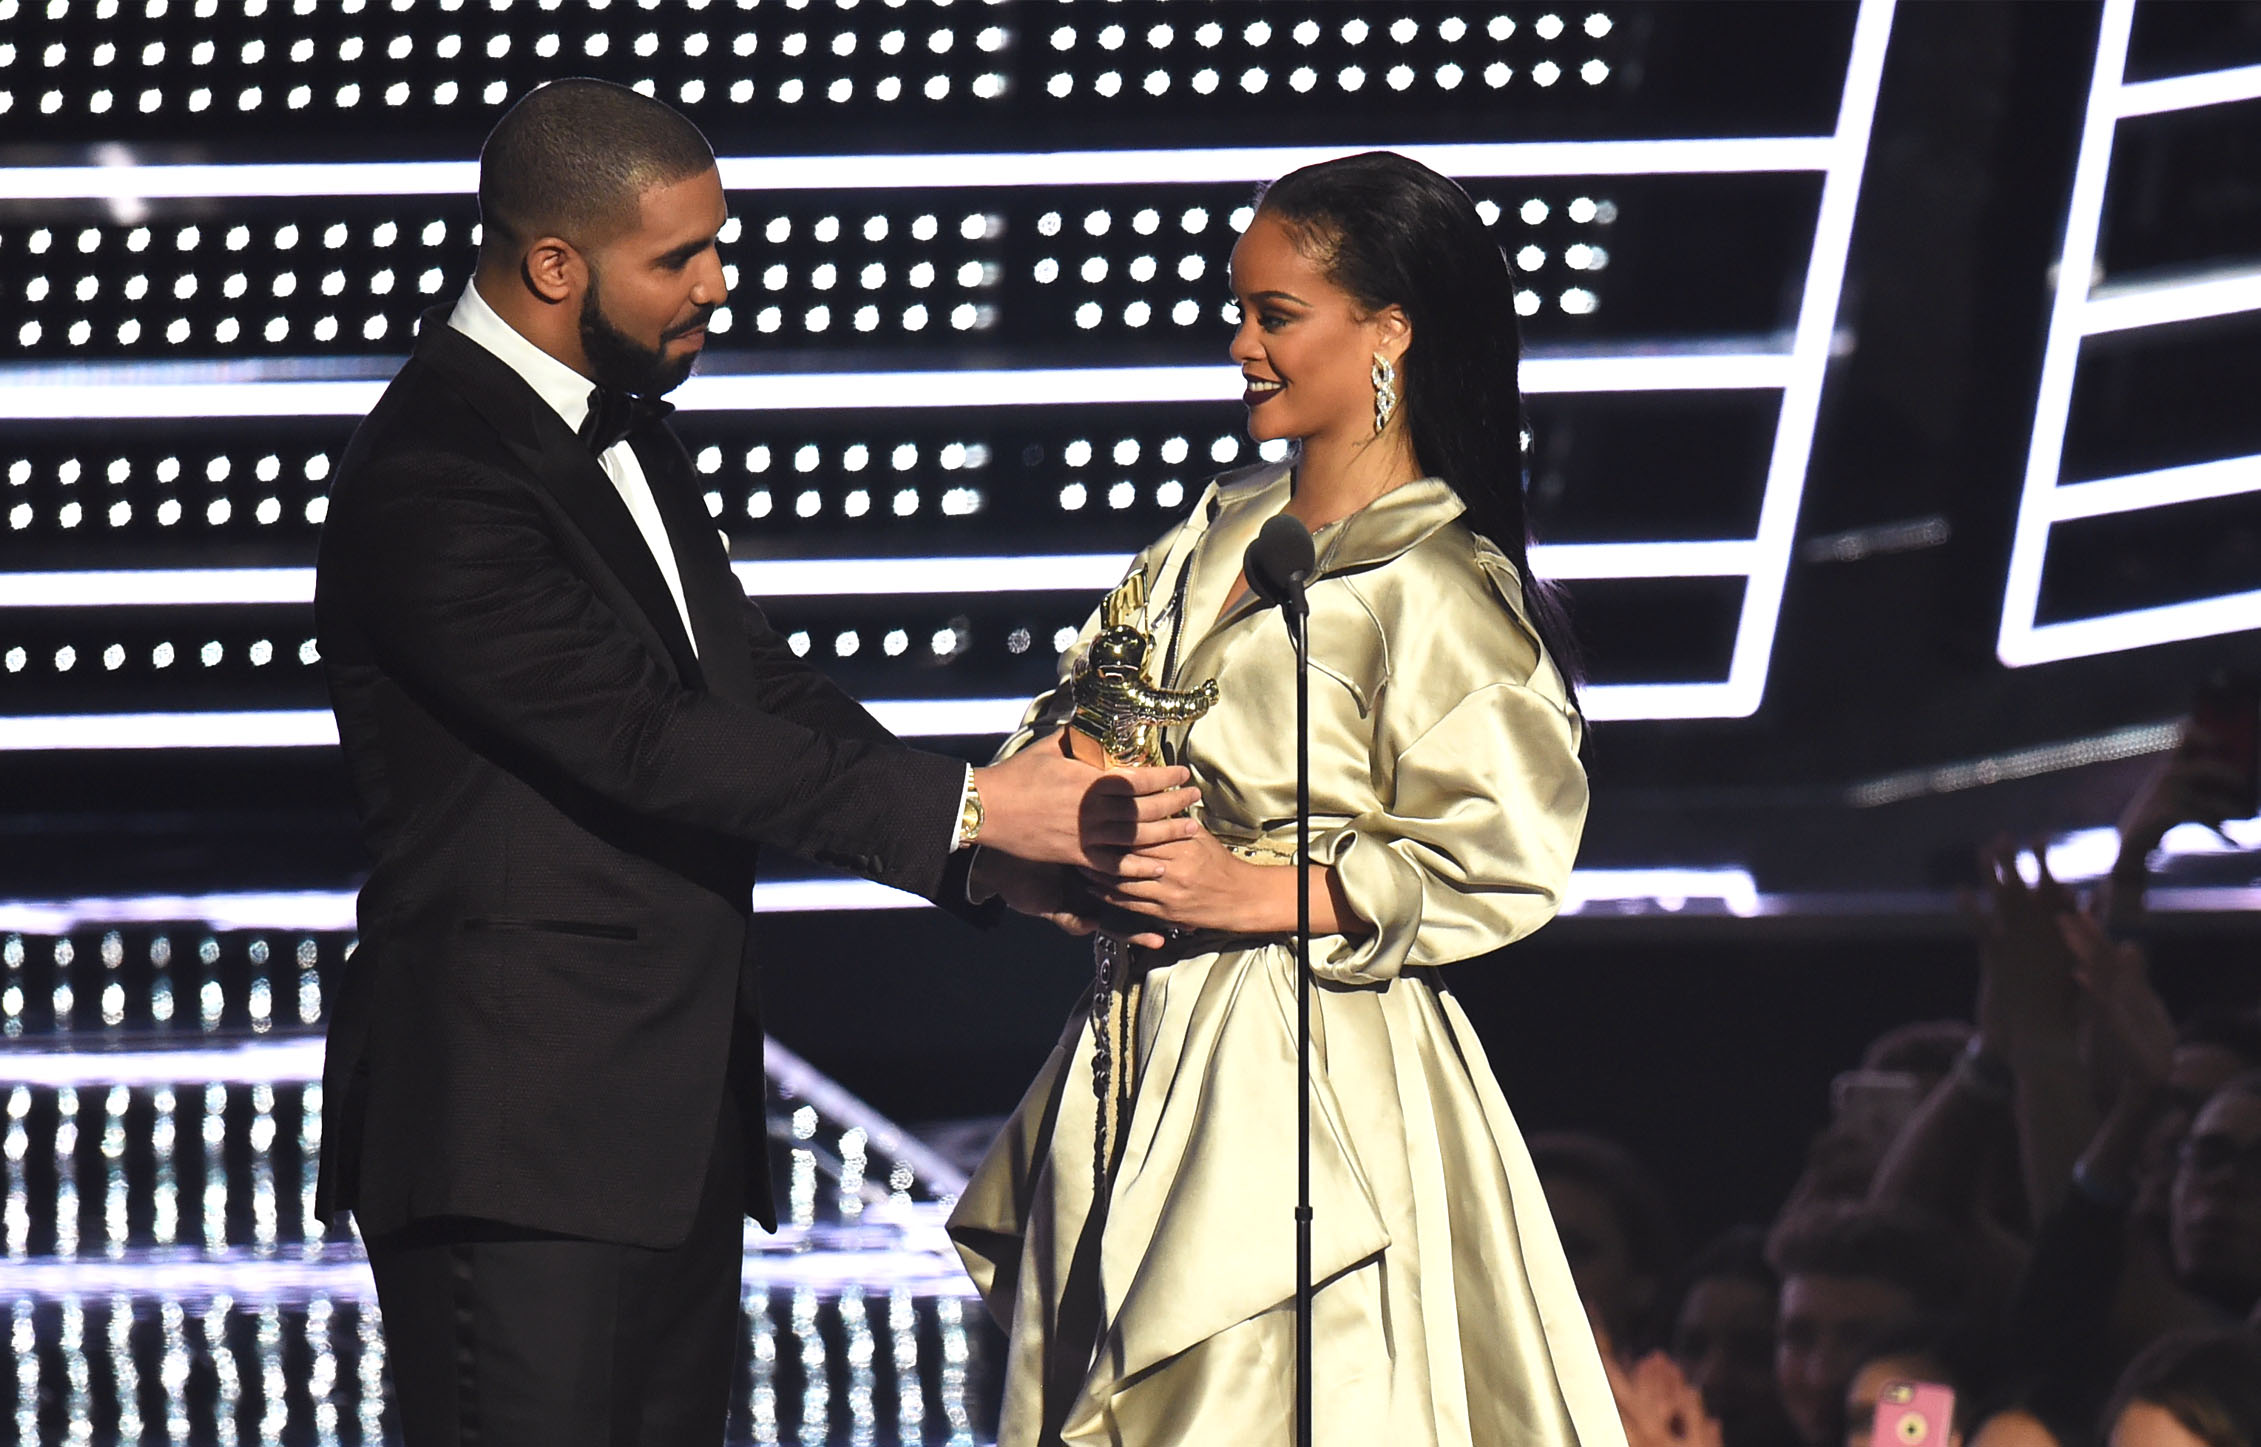 rihanna and drake dating 2016 what does it mean when you are dating someone in a dream